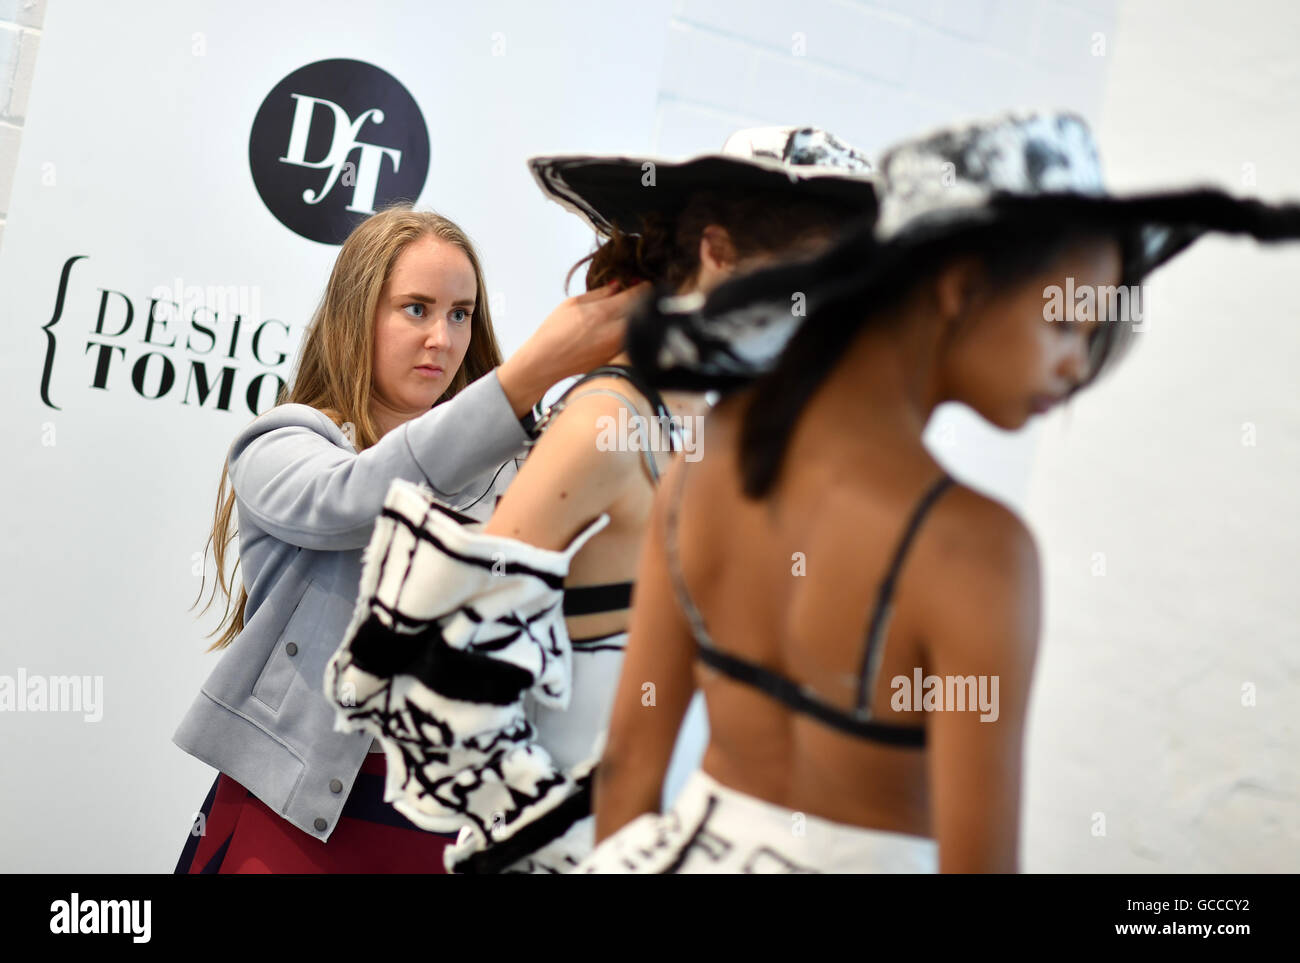 Berlin, Germany. 27th June, 2016. A model is dressed into a creation of Norwegian designer Edda Gimnes during the Stock Photo